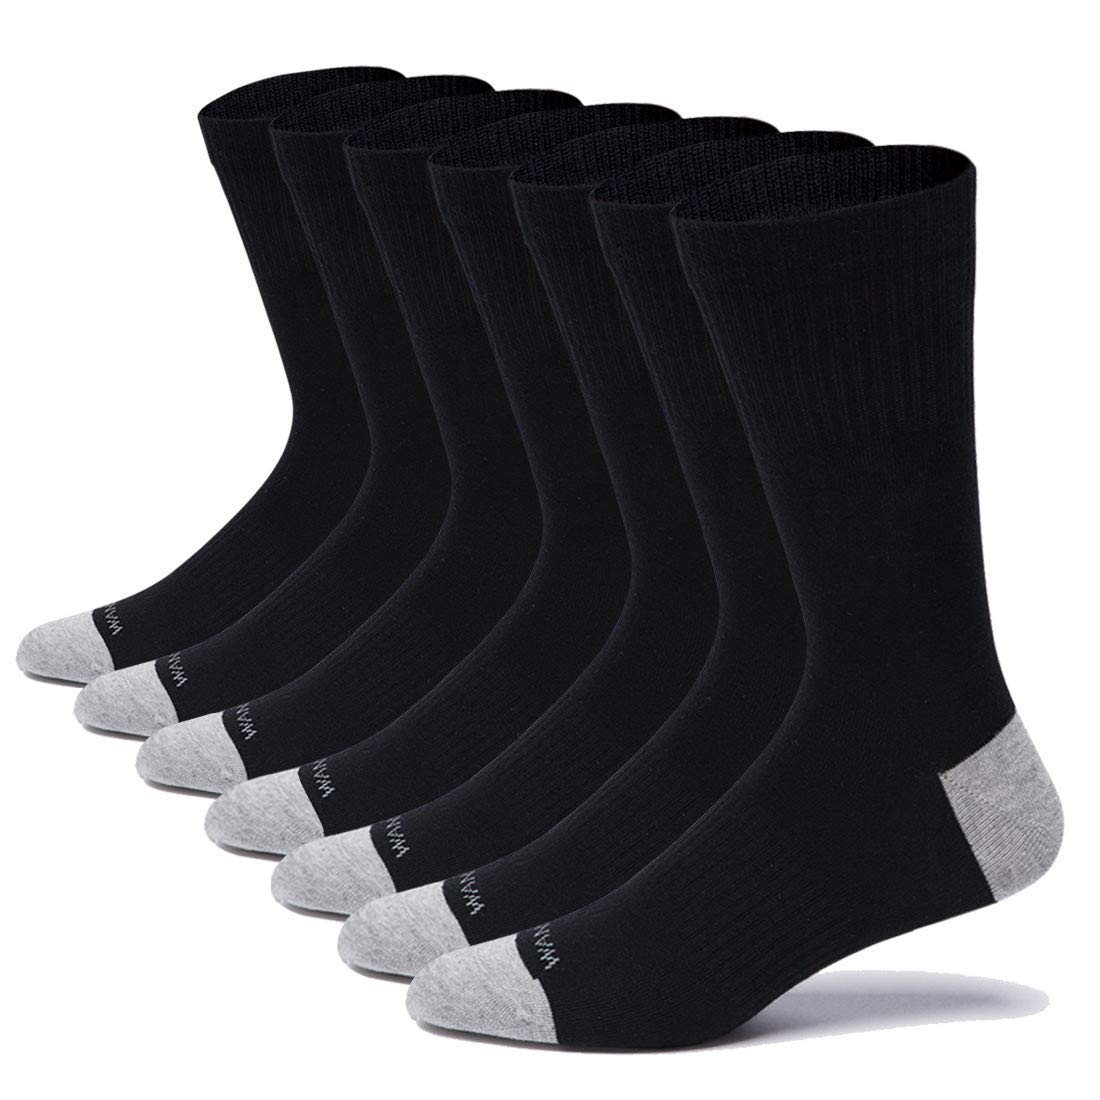 WANDER Cotton Dress Socks 7-12 Pairs Thin Crew Socks Mens Women Casual Work Socks for Shoes